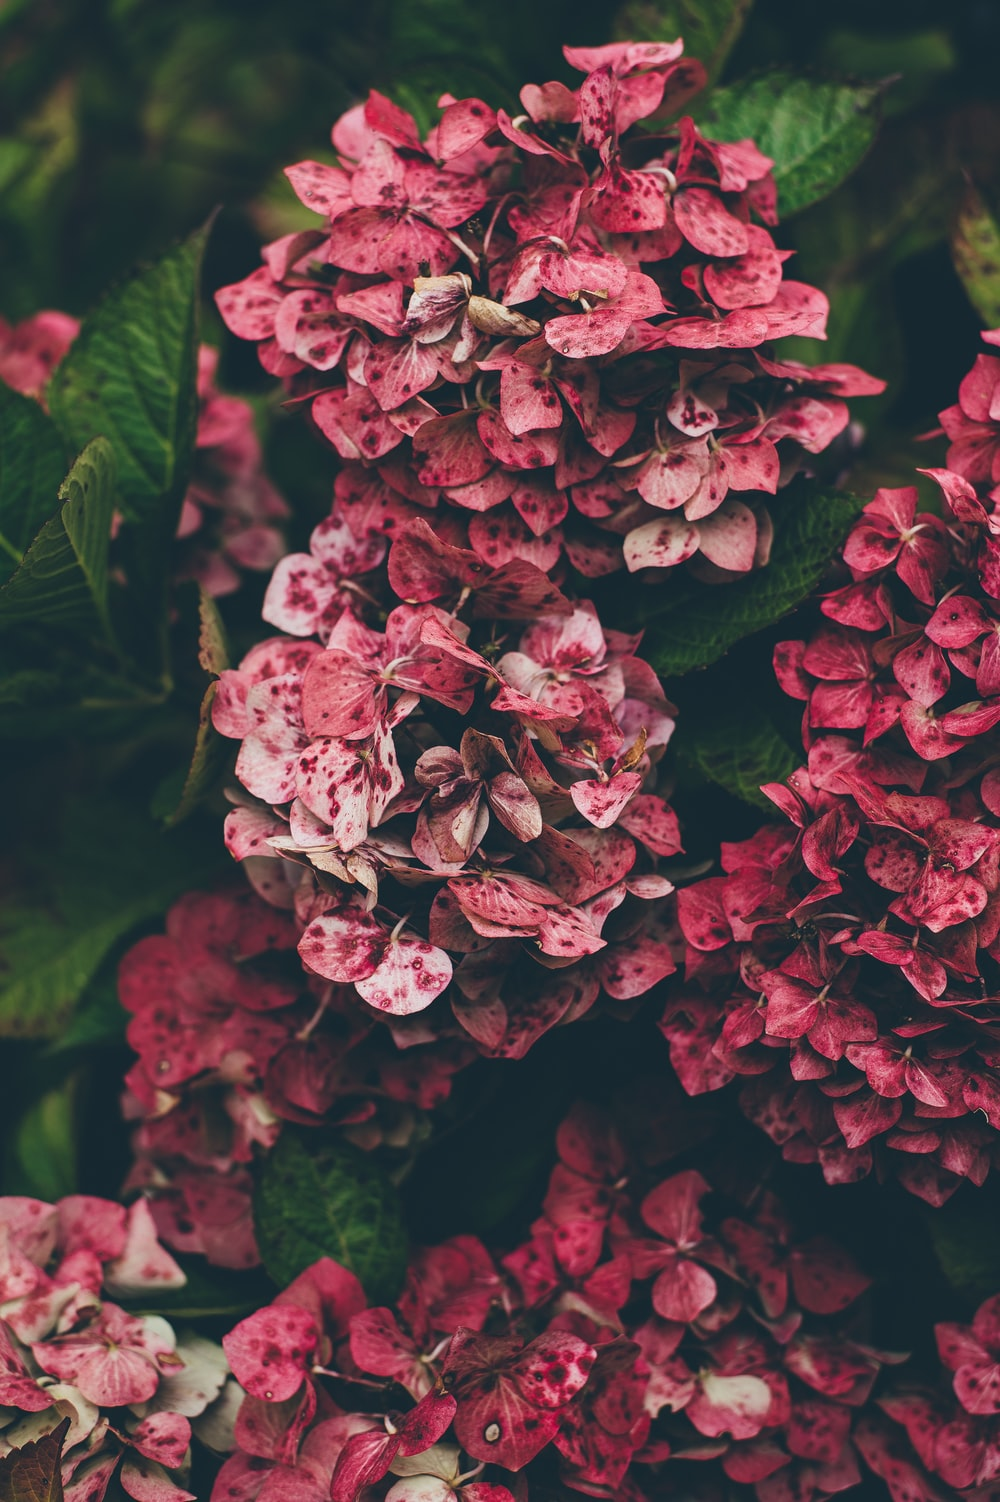 pink hydrangea flowers in close-up photography